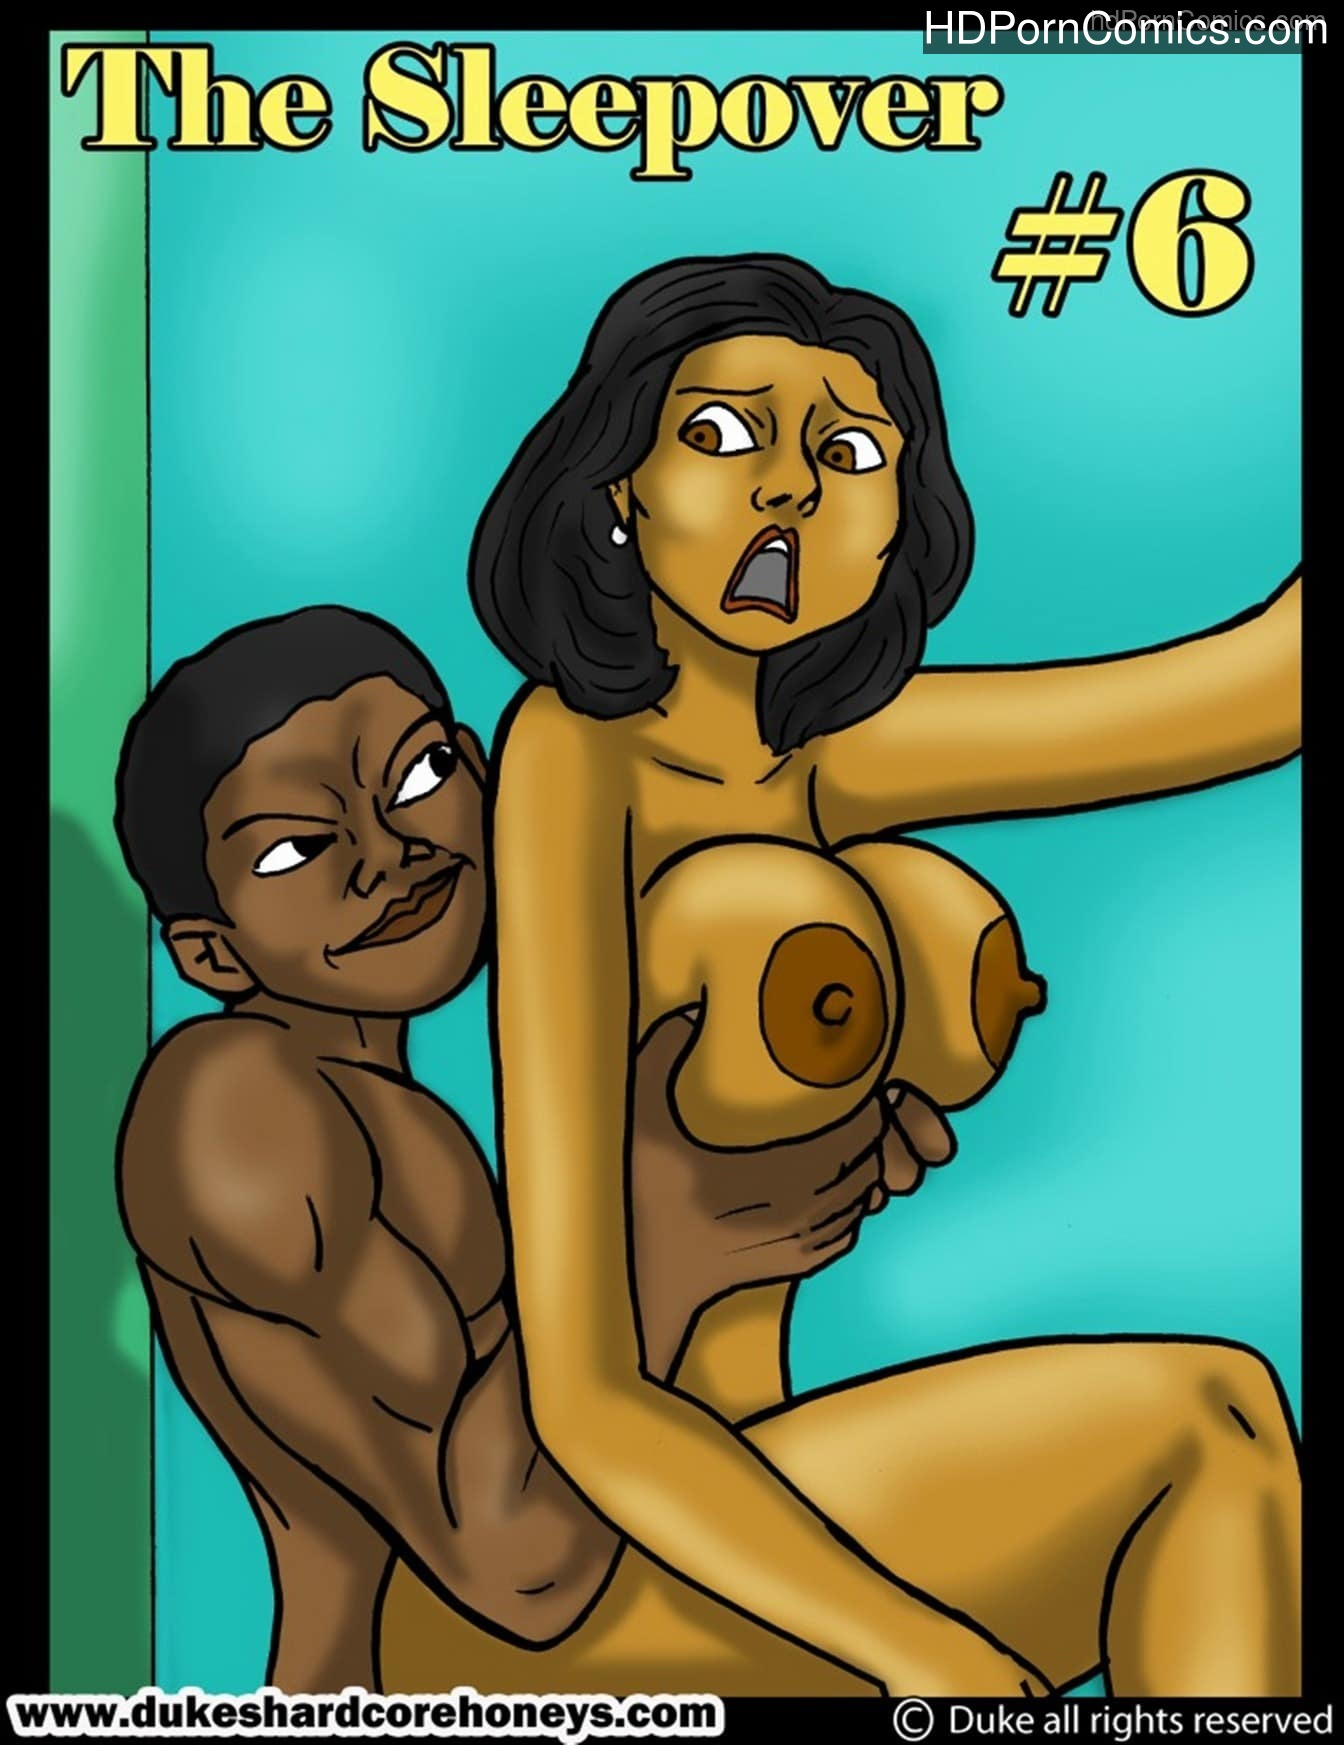 Interracial - The Sleepover 61 free sex comic